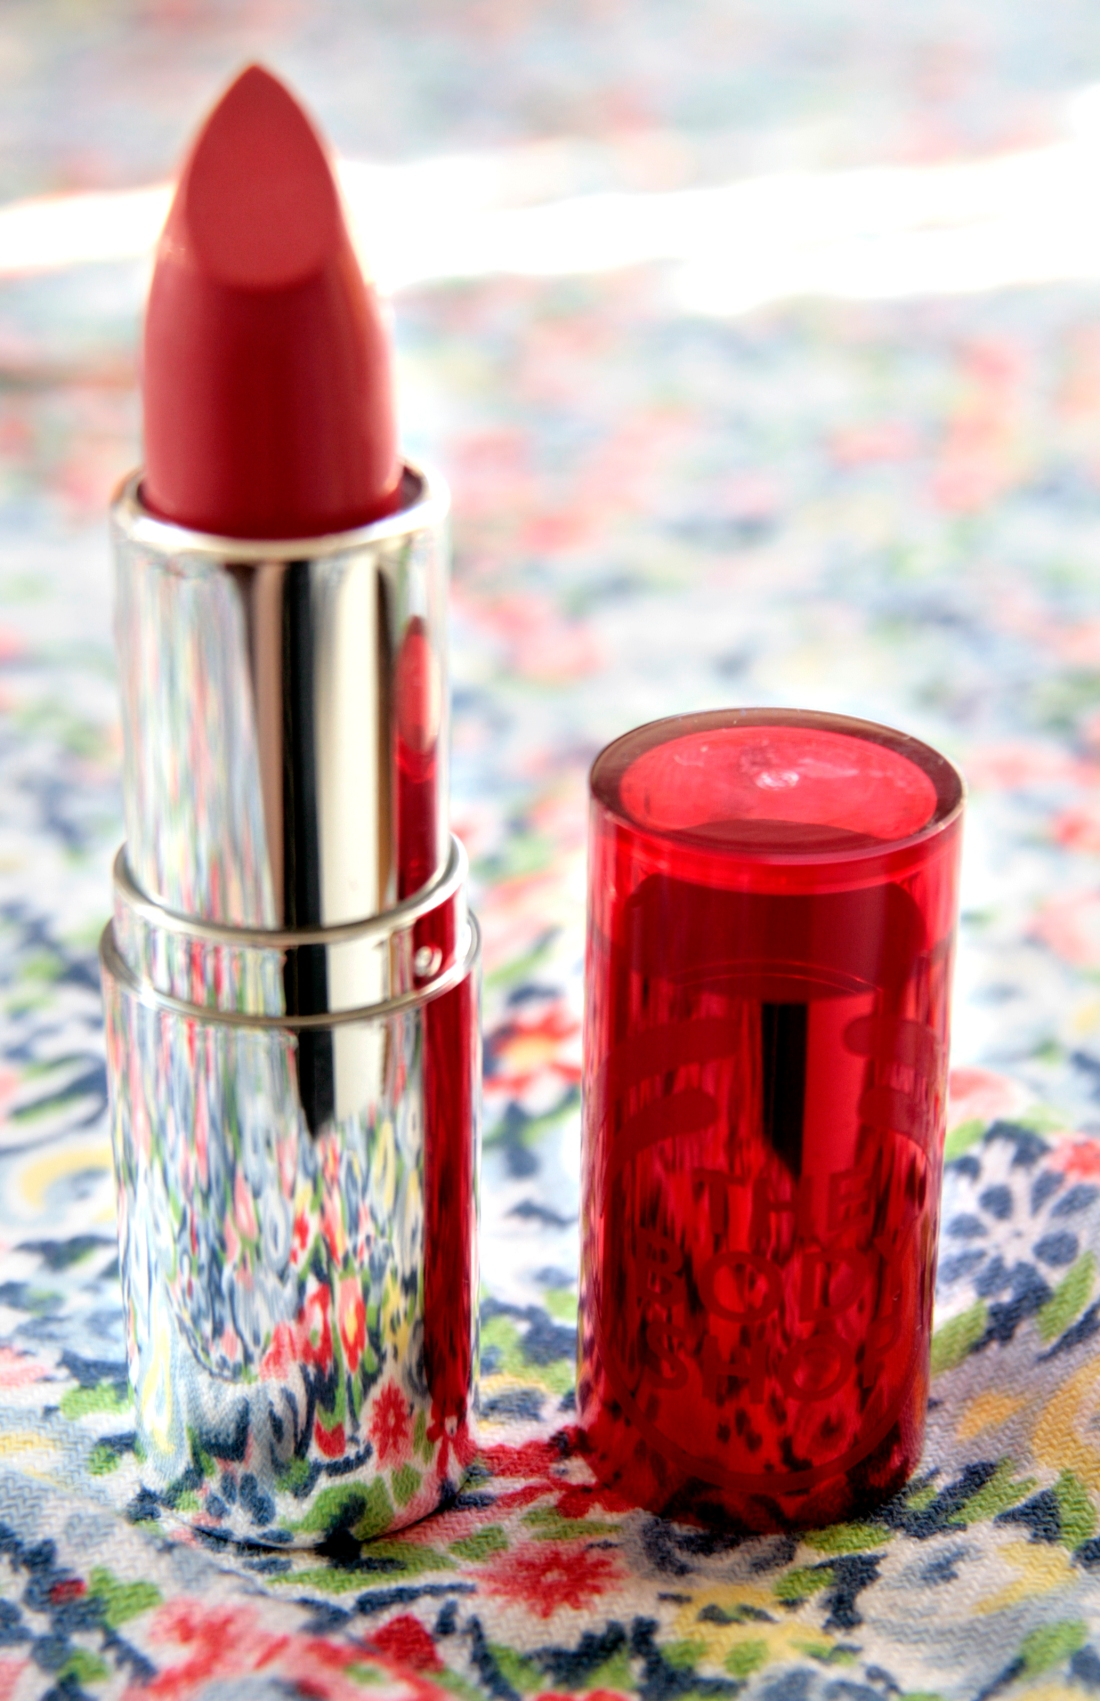 The Body Shop Colour Crush Lipstick in Sweet Coral